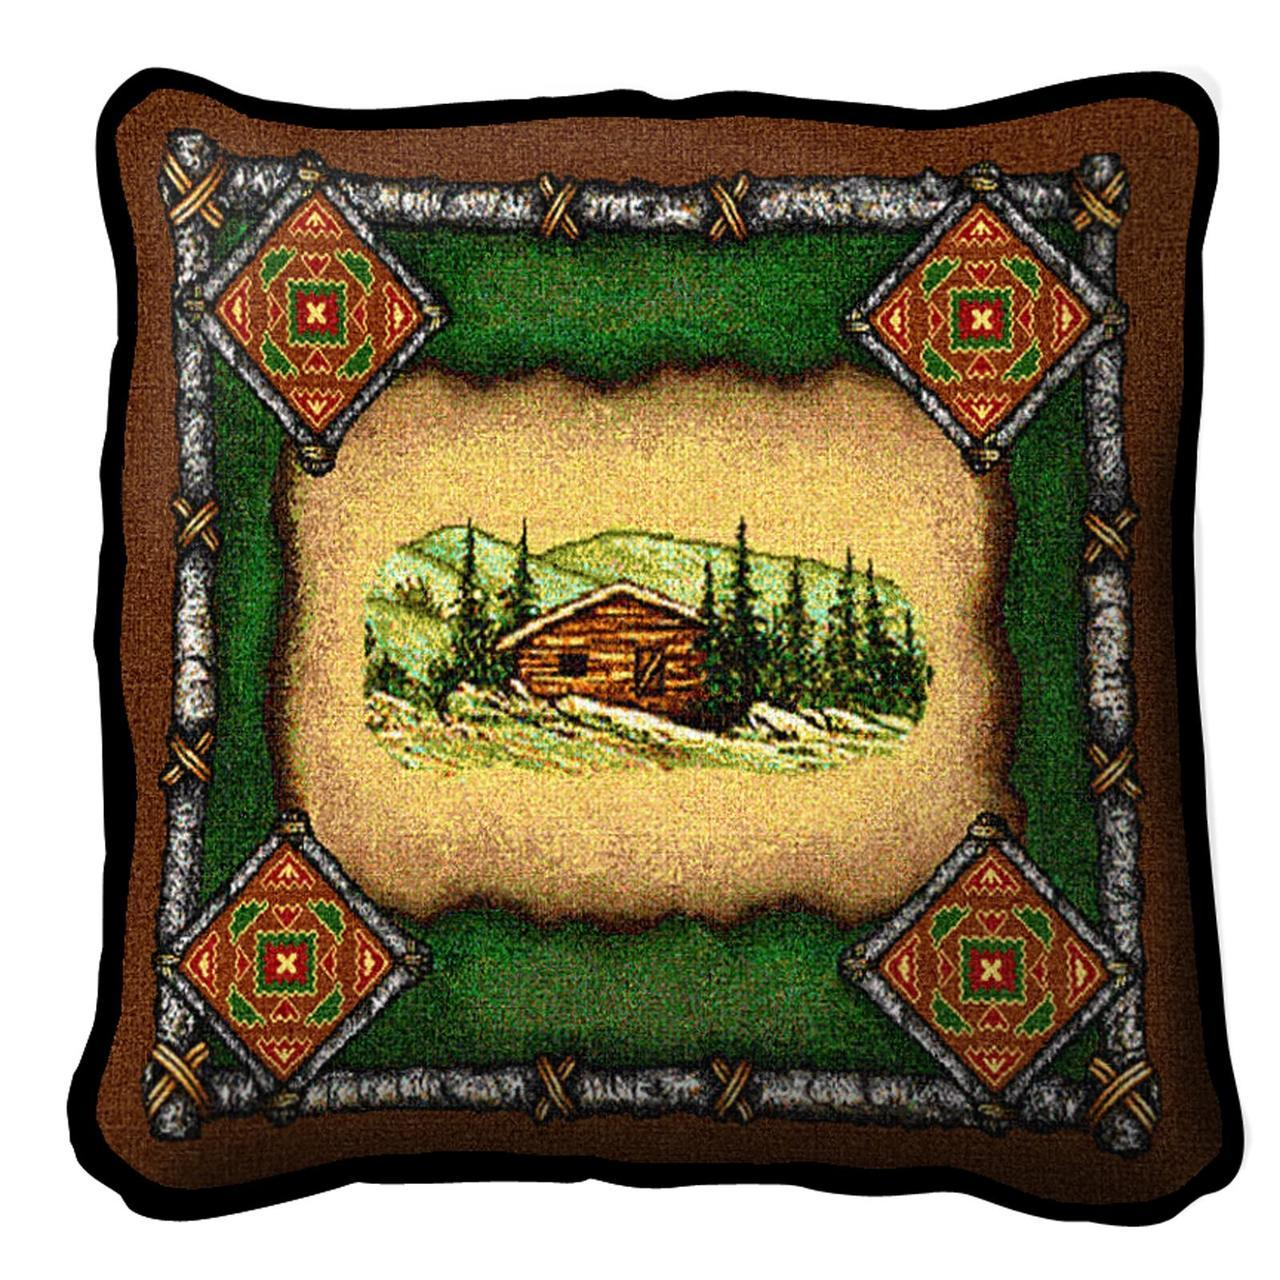 Throw Pillow-17 x 17-Rustic-Cabin-Lodge